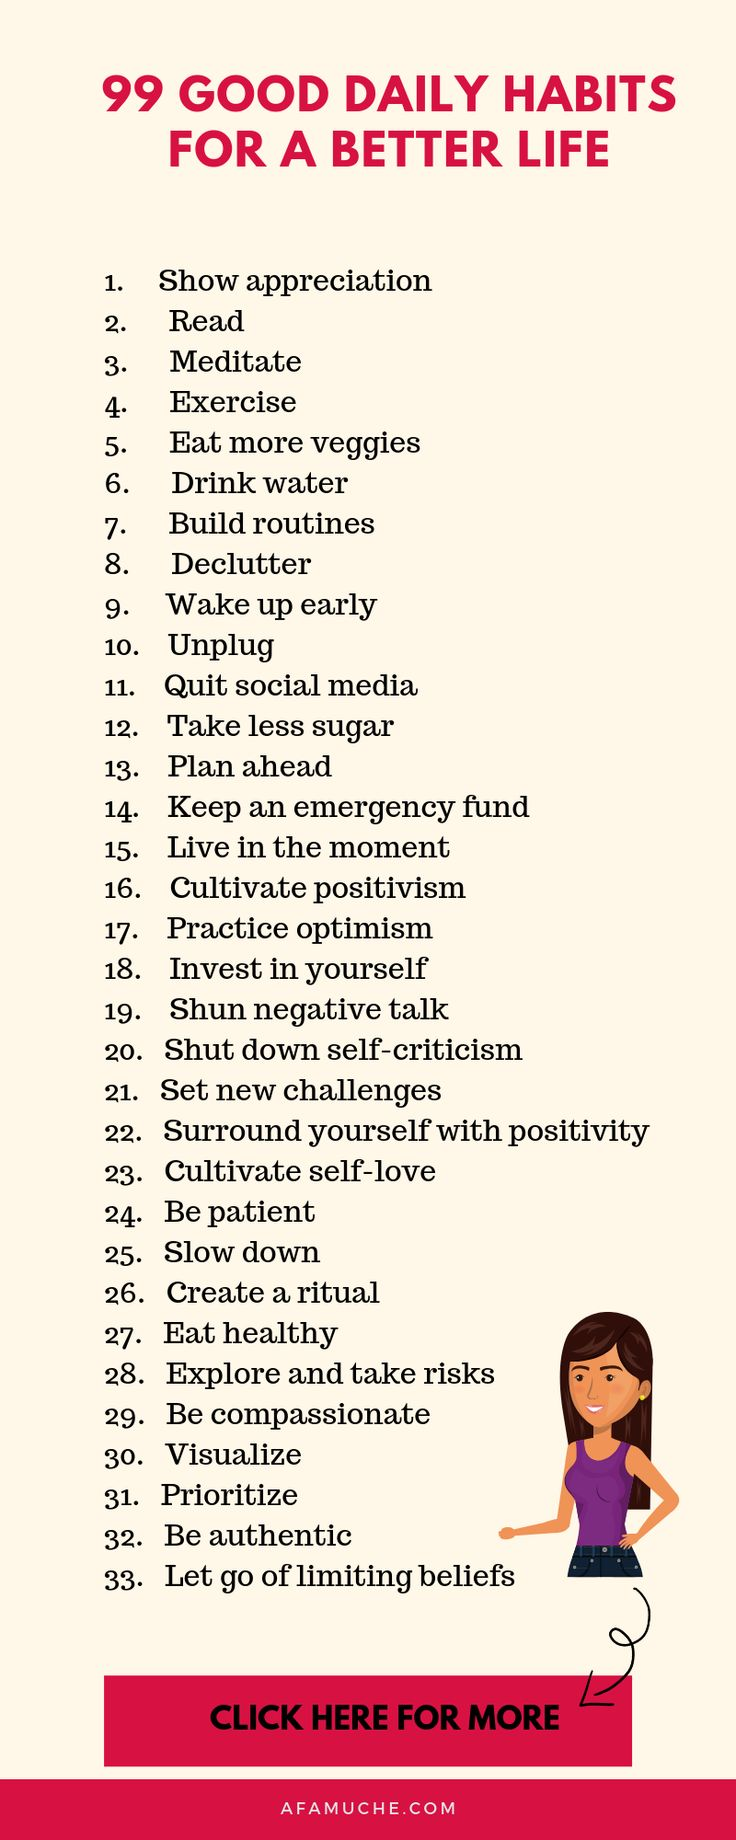 99 Good daily habits for a better life infographic